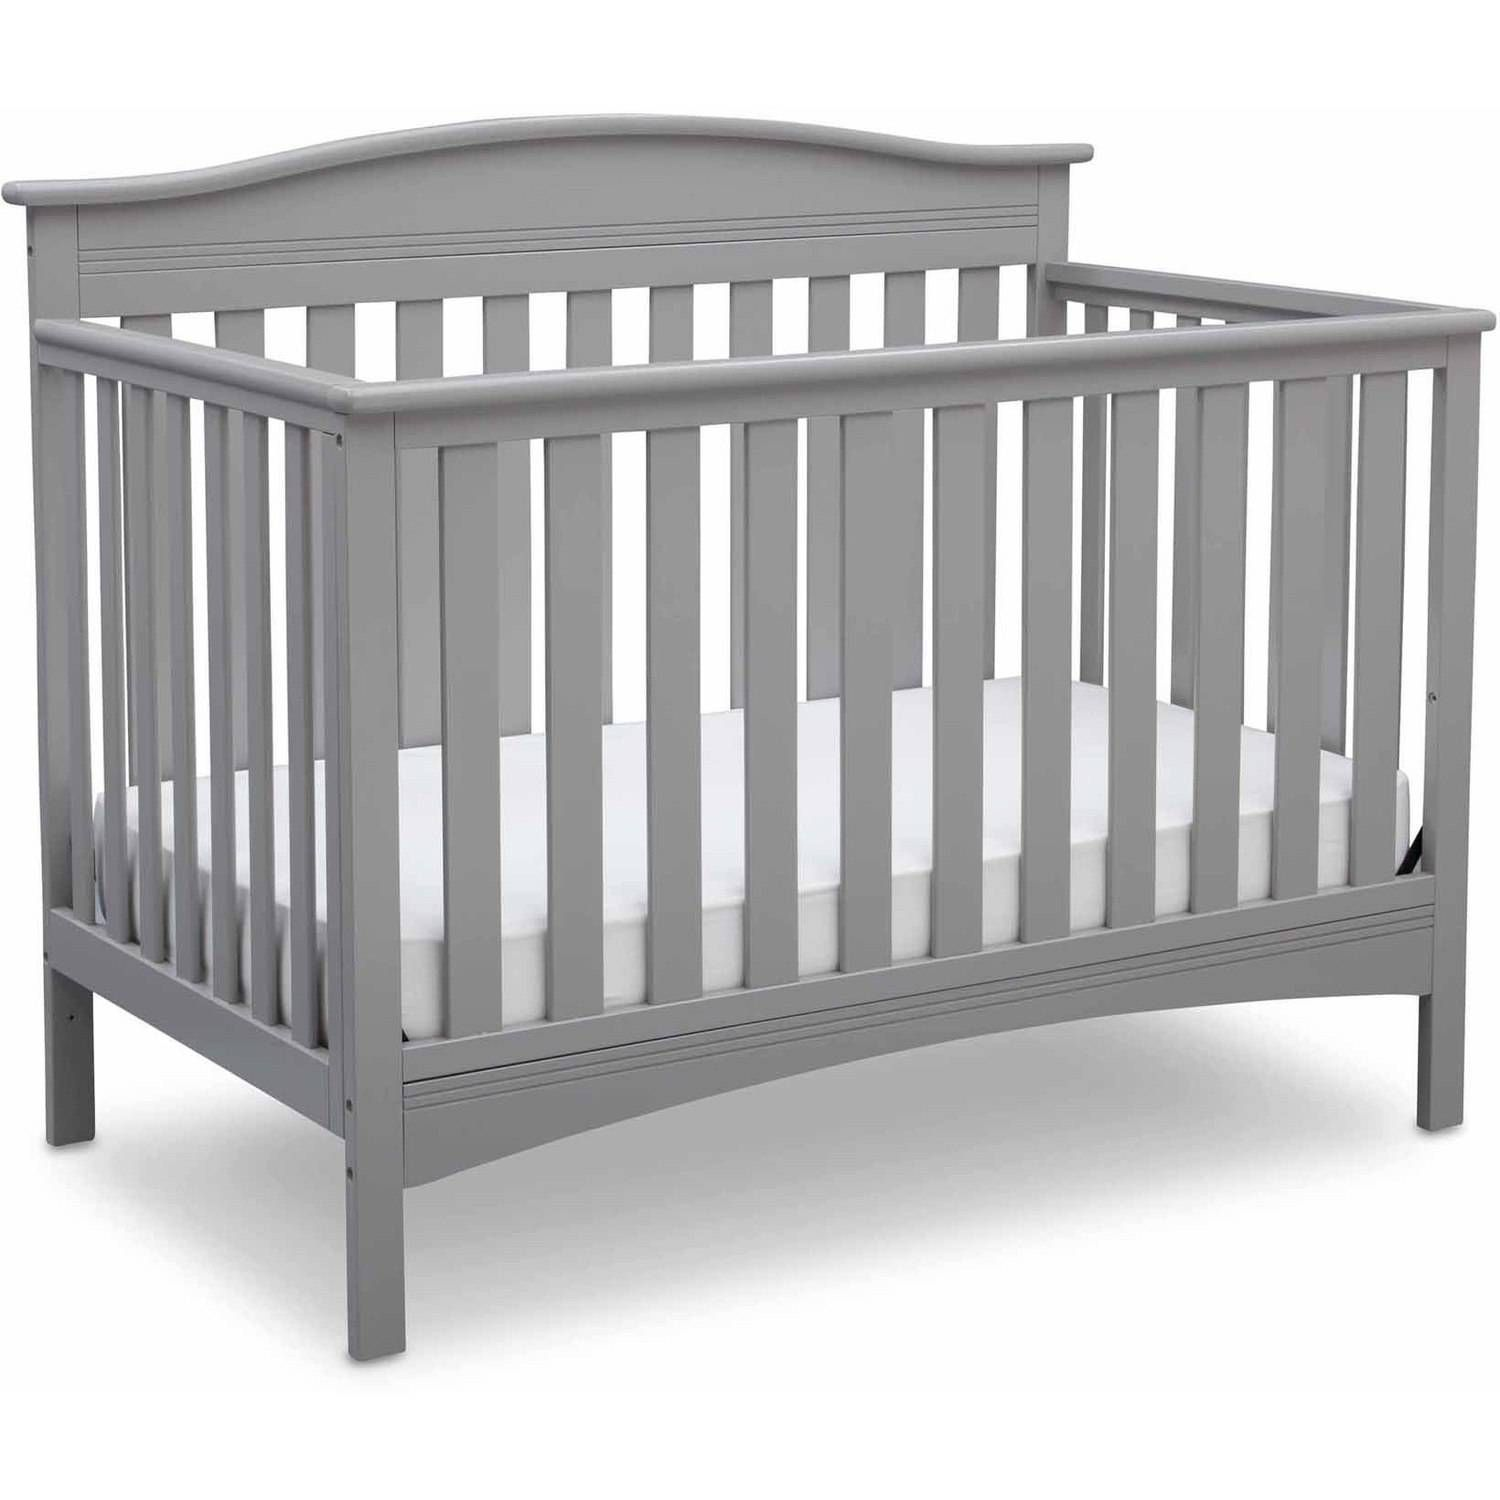 Baby in 2020 (With images) | Baby cribs convertible, Baby ...